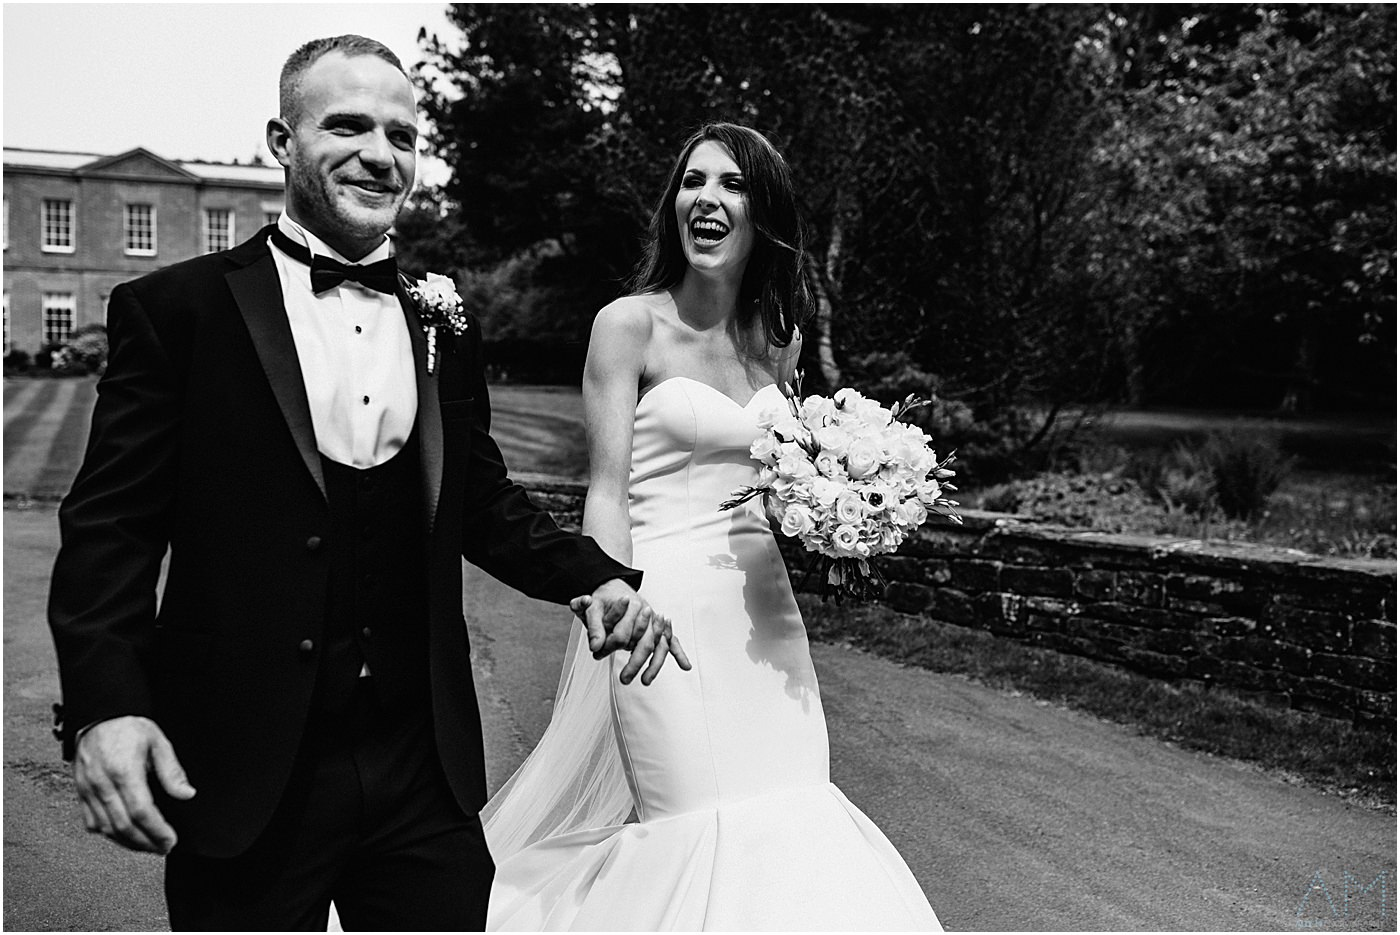 Bride and groom walking together at Rivington Hall Barn